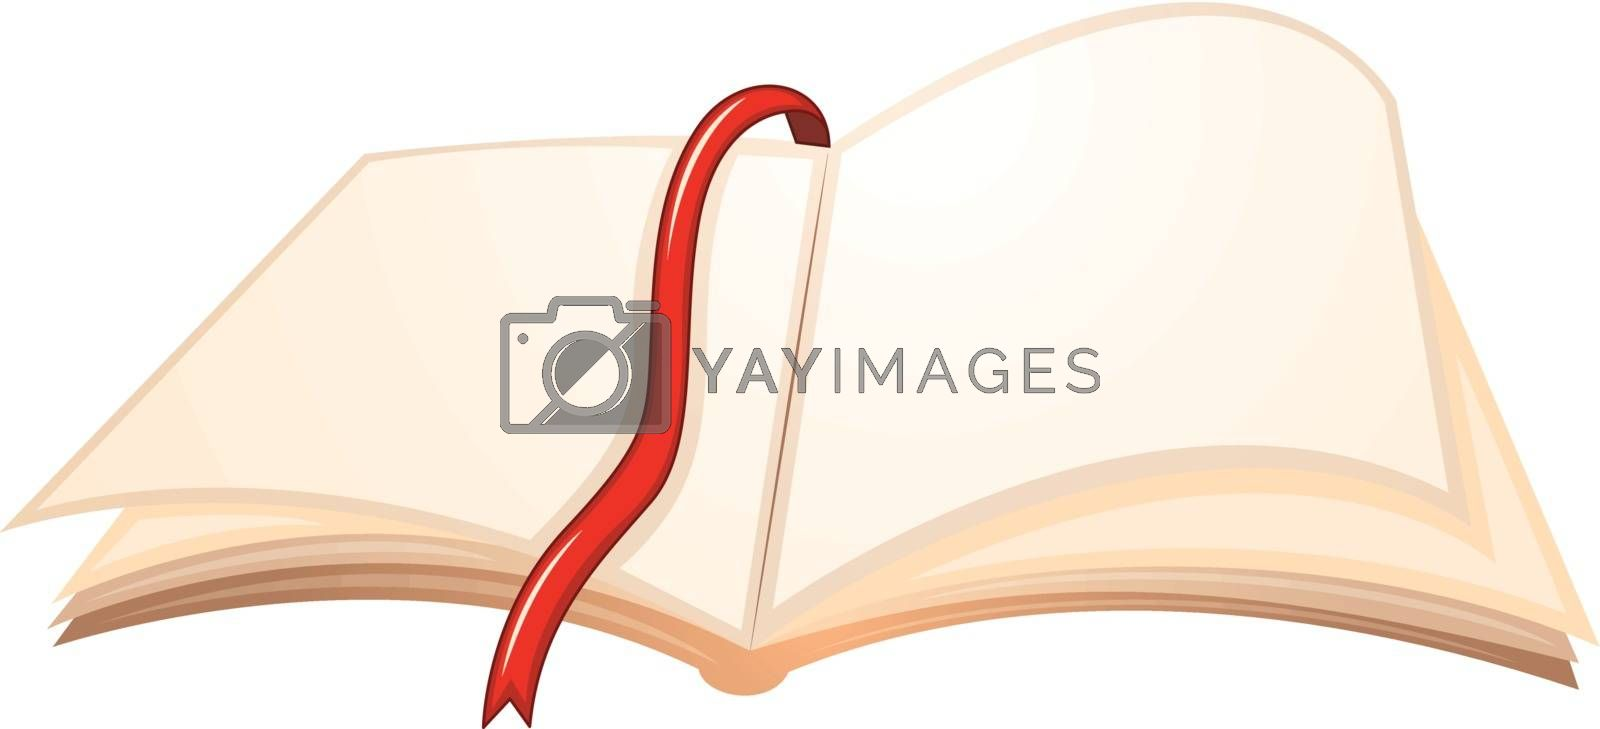 Illustration of an empty book with a red bookmark on a white background